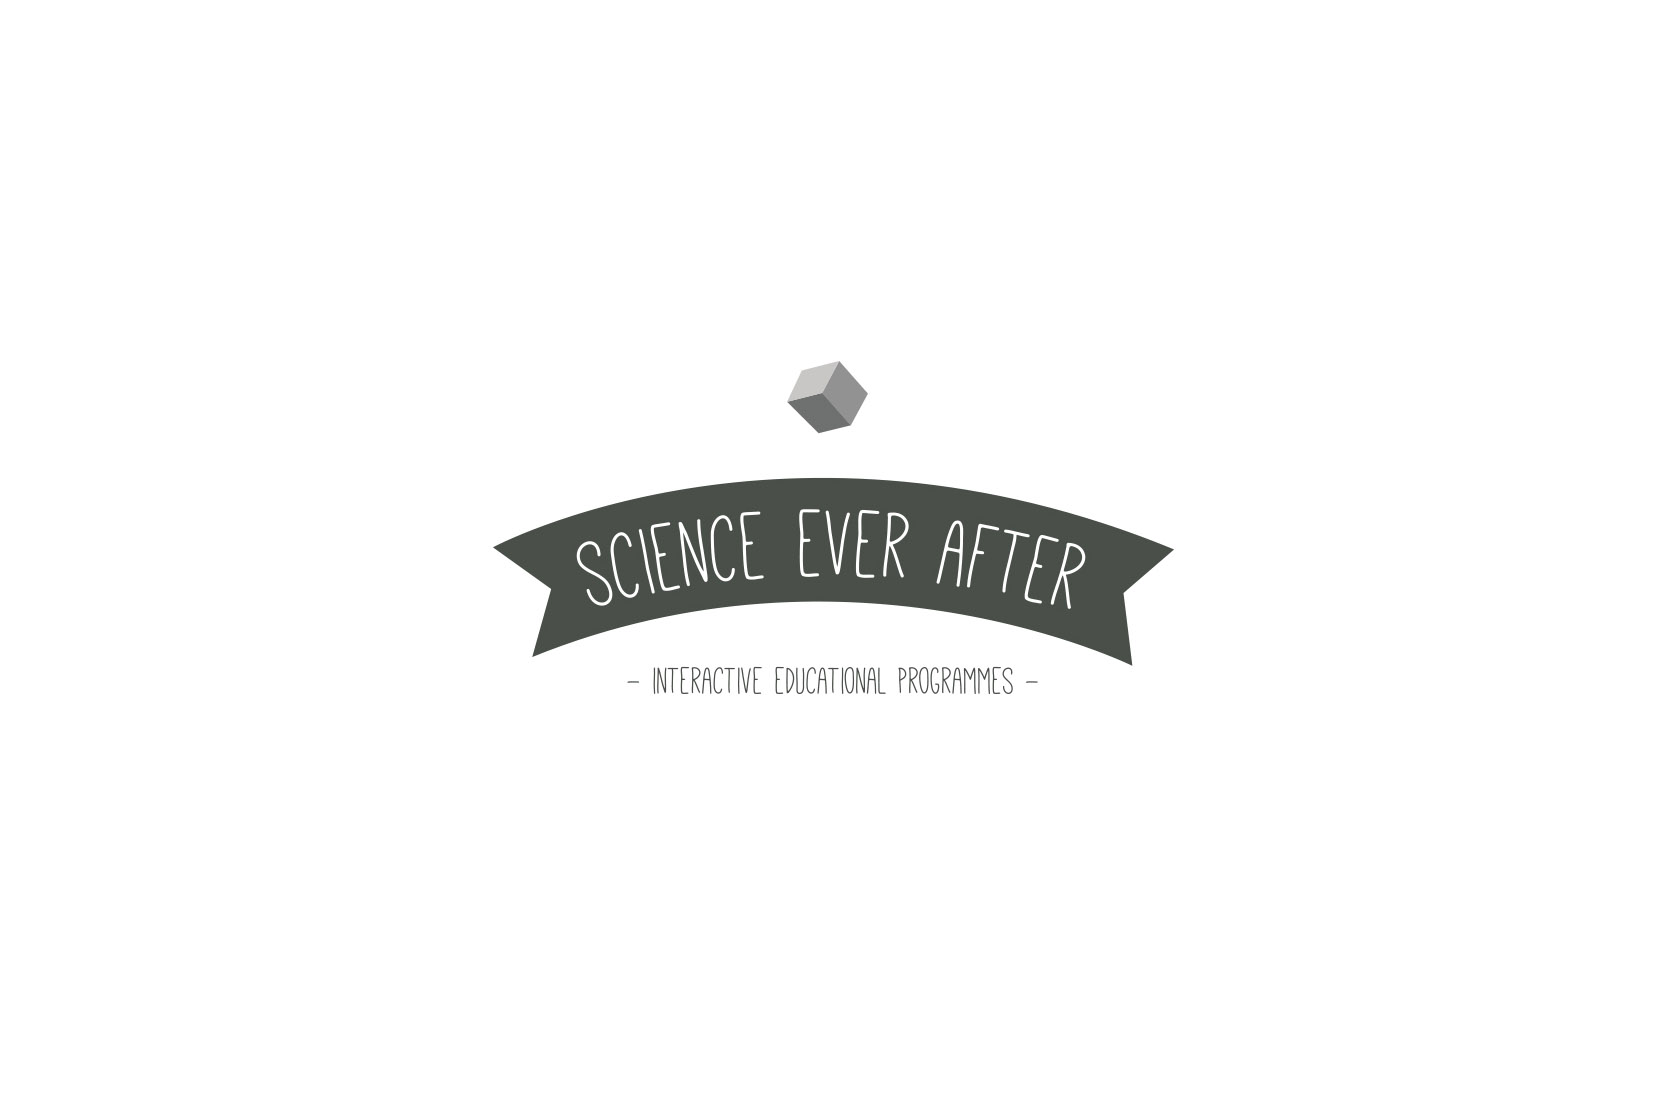 science ever after